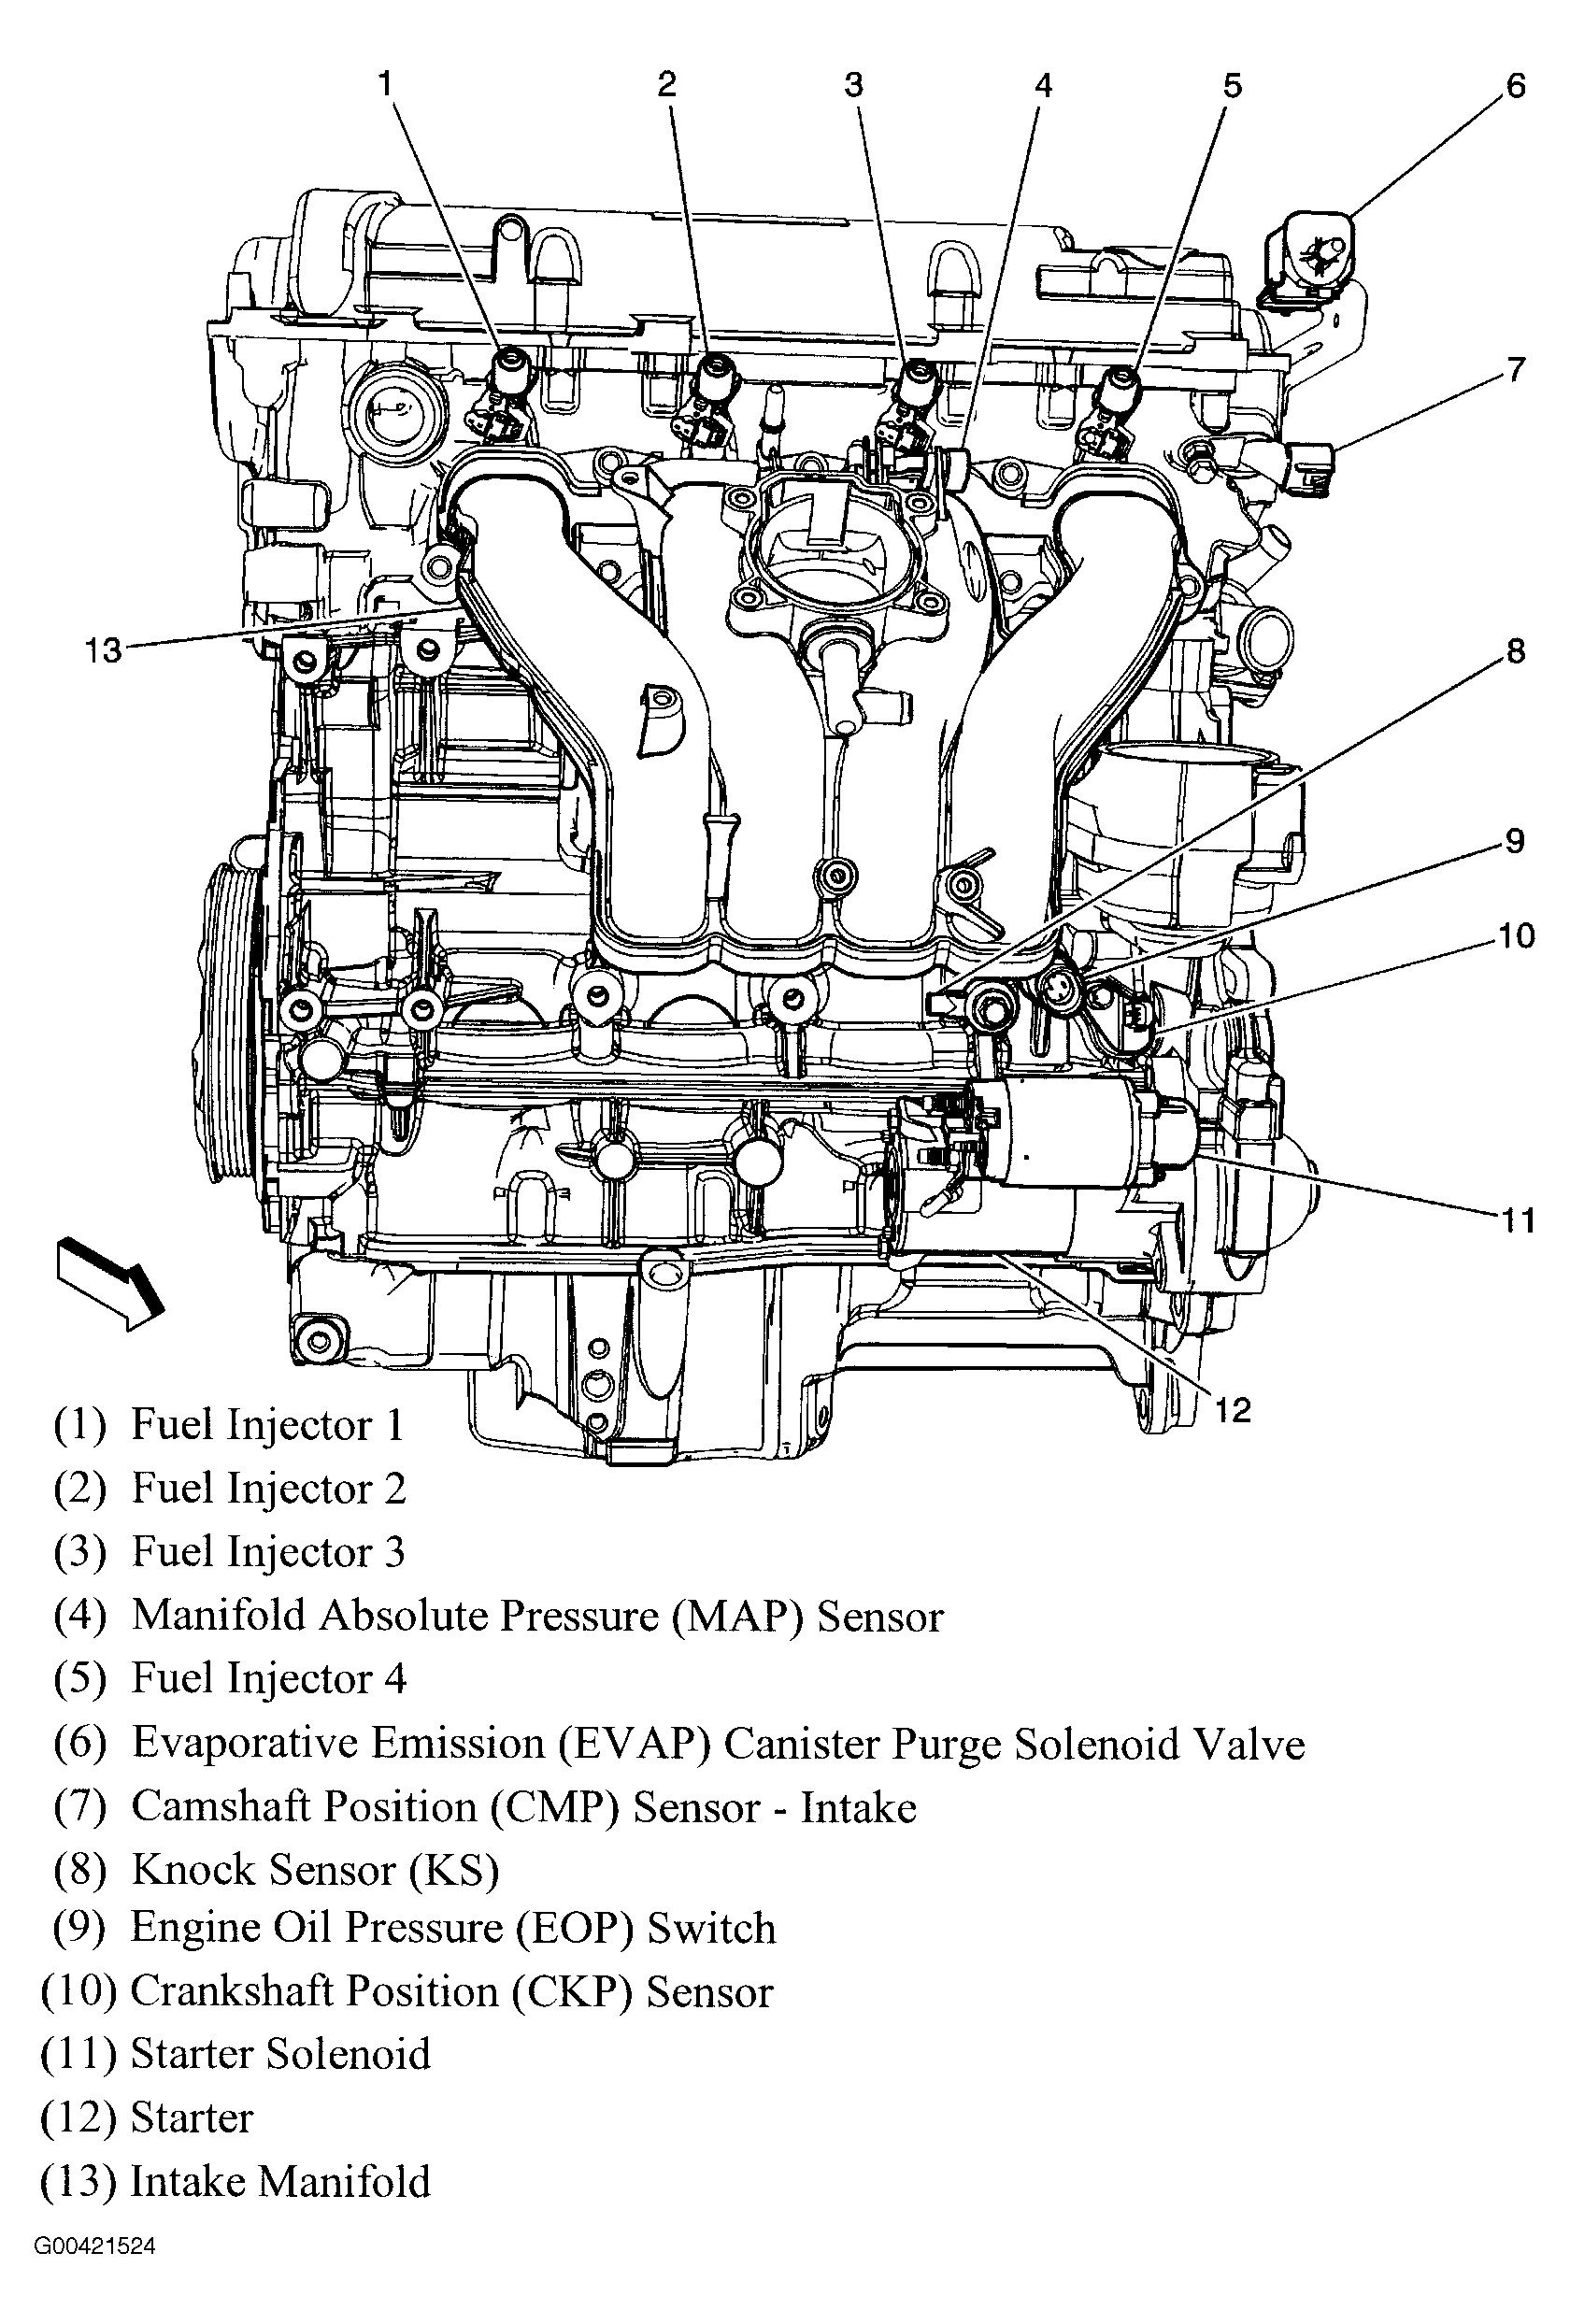 Chevy Cobalt 2 2l Engine Diagram also 2004 Tahoe Location Of Vapor Canister Purge Solenoid Chevrolet furthermore 2009 Chevrolet Hhr Crankshaft Sensor as well 2014 Chevy Cruze Stereo Wiring Diagram besides Dodge Crank Sensor Location. on chevrolet 2011 hhr engine diagram